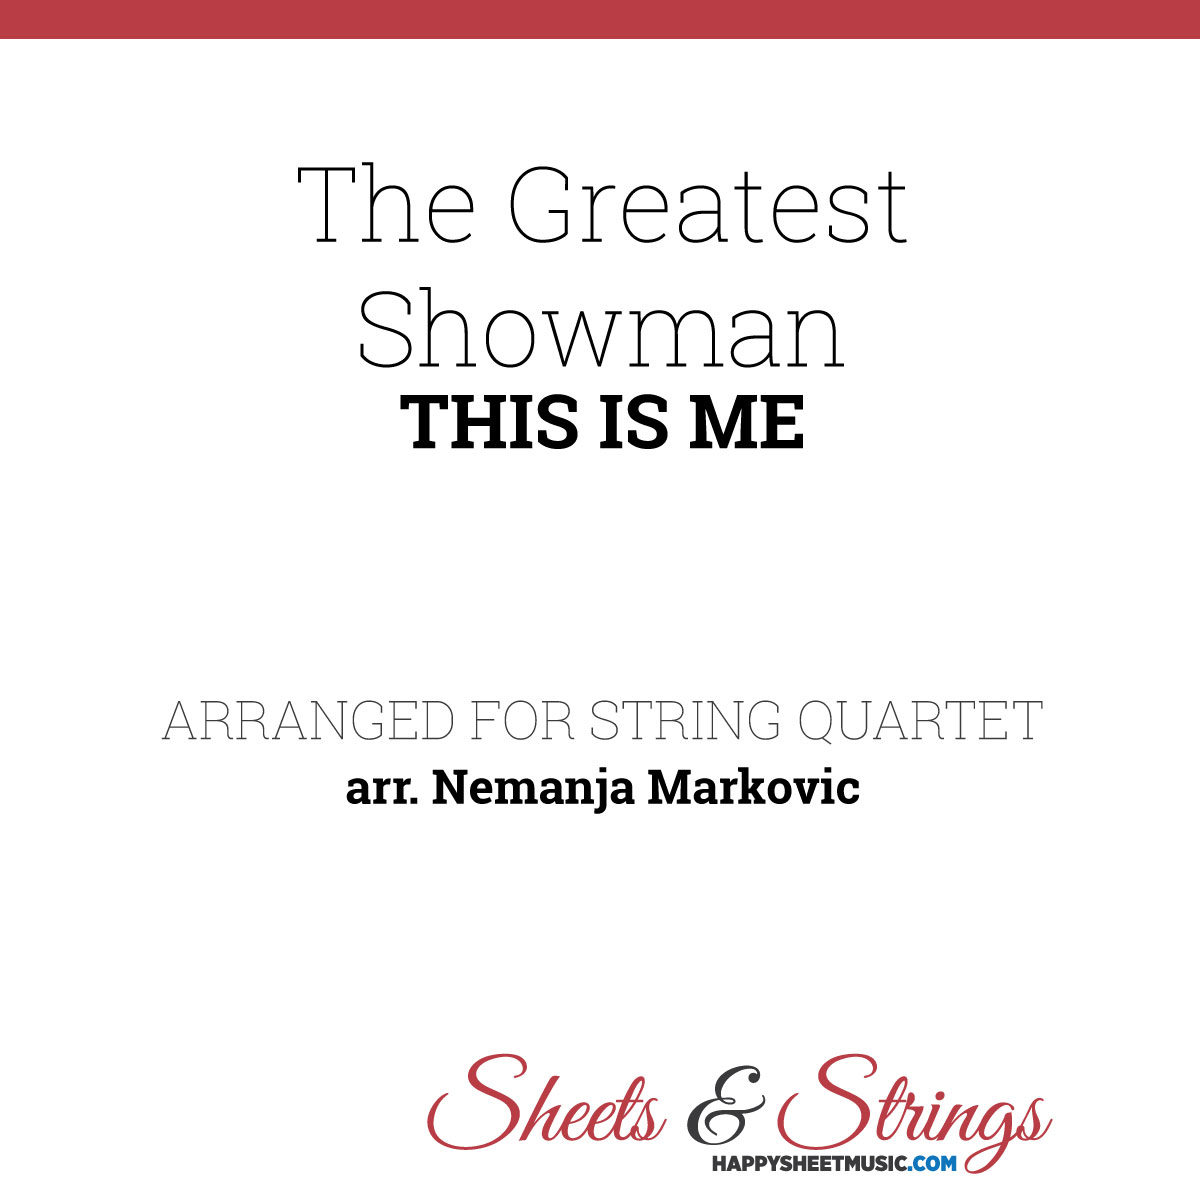 The Greatest Showman - This Is Me - Sheet Music for String Quartet - Music Arrangement for String Quartet